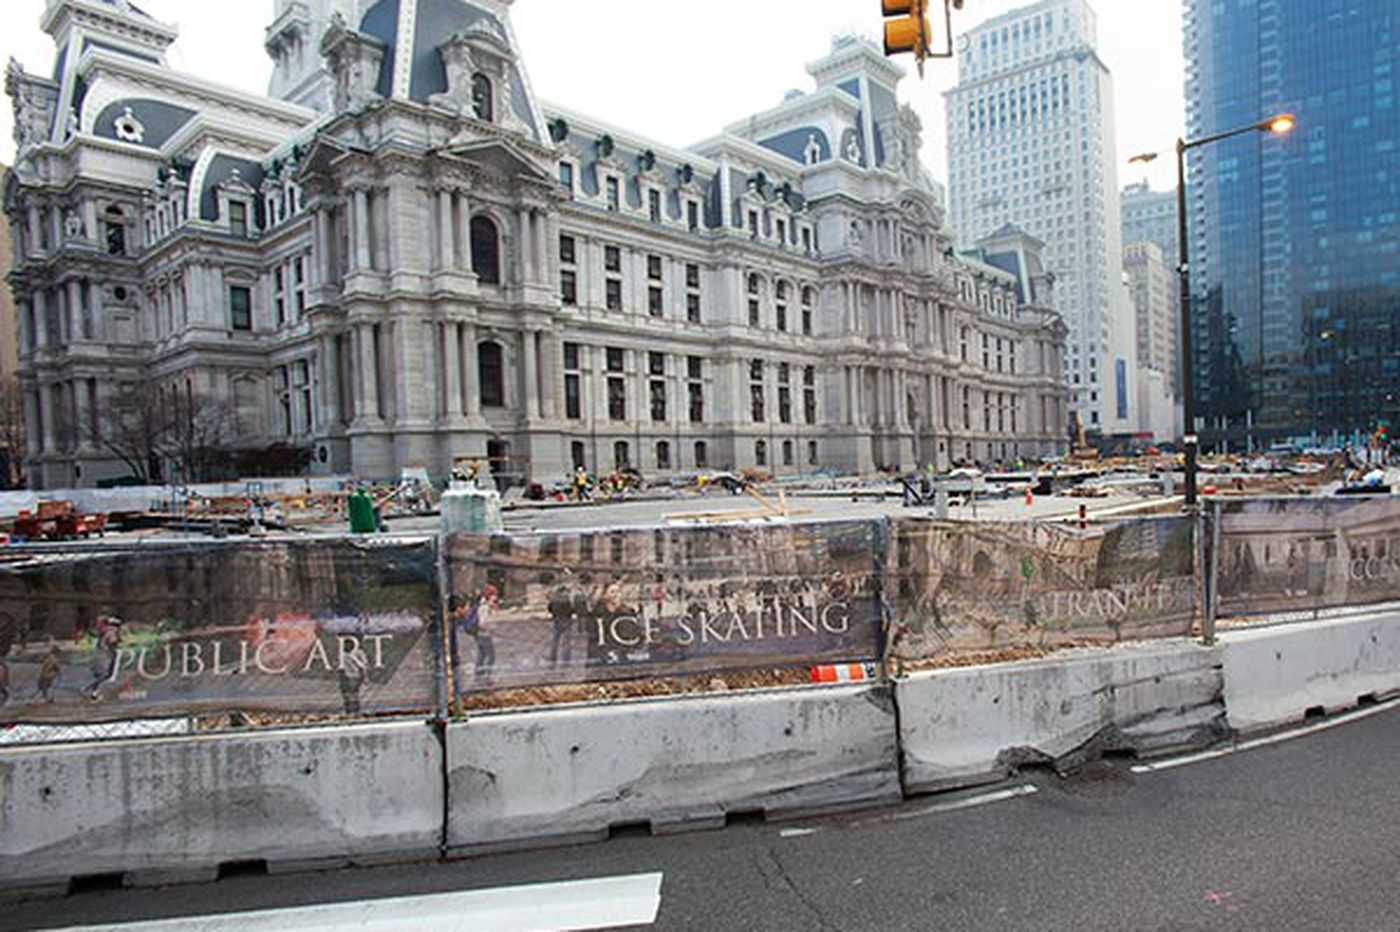 Dilworth Plaza remake won't be finished until Labor Day